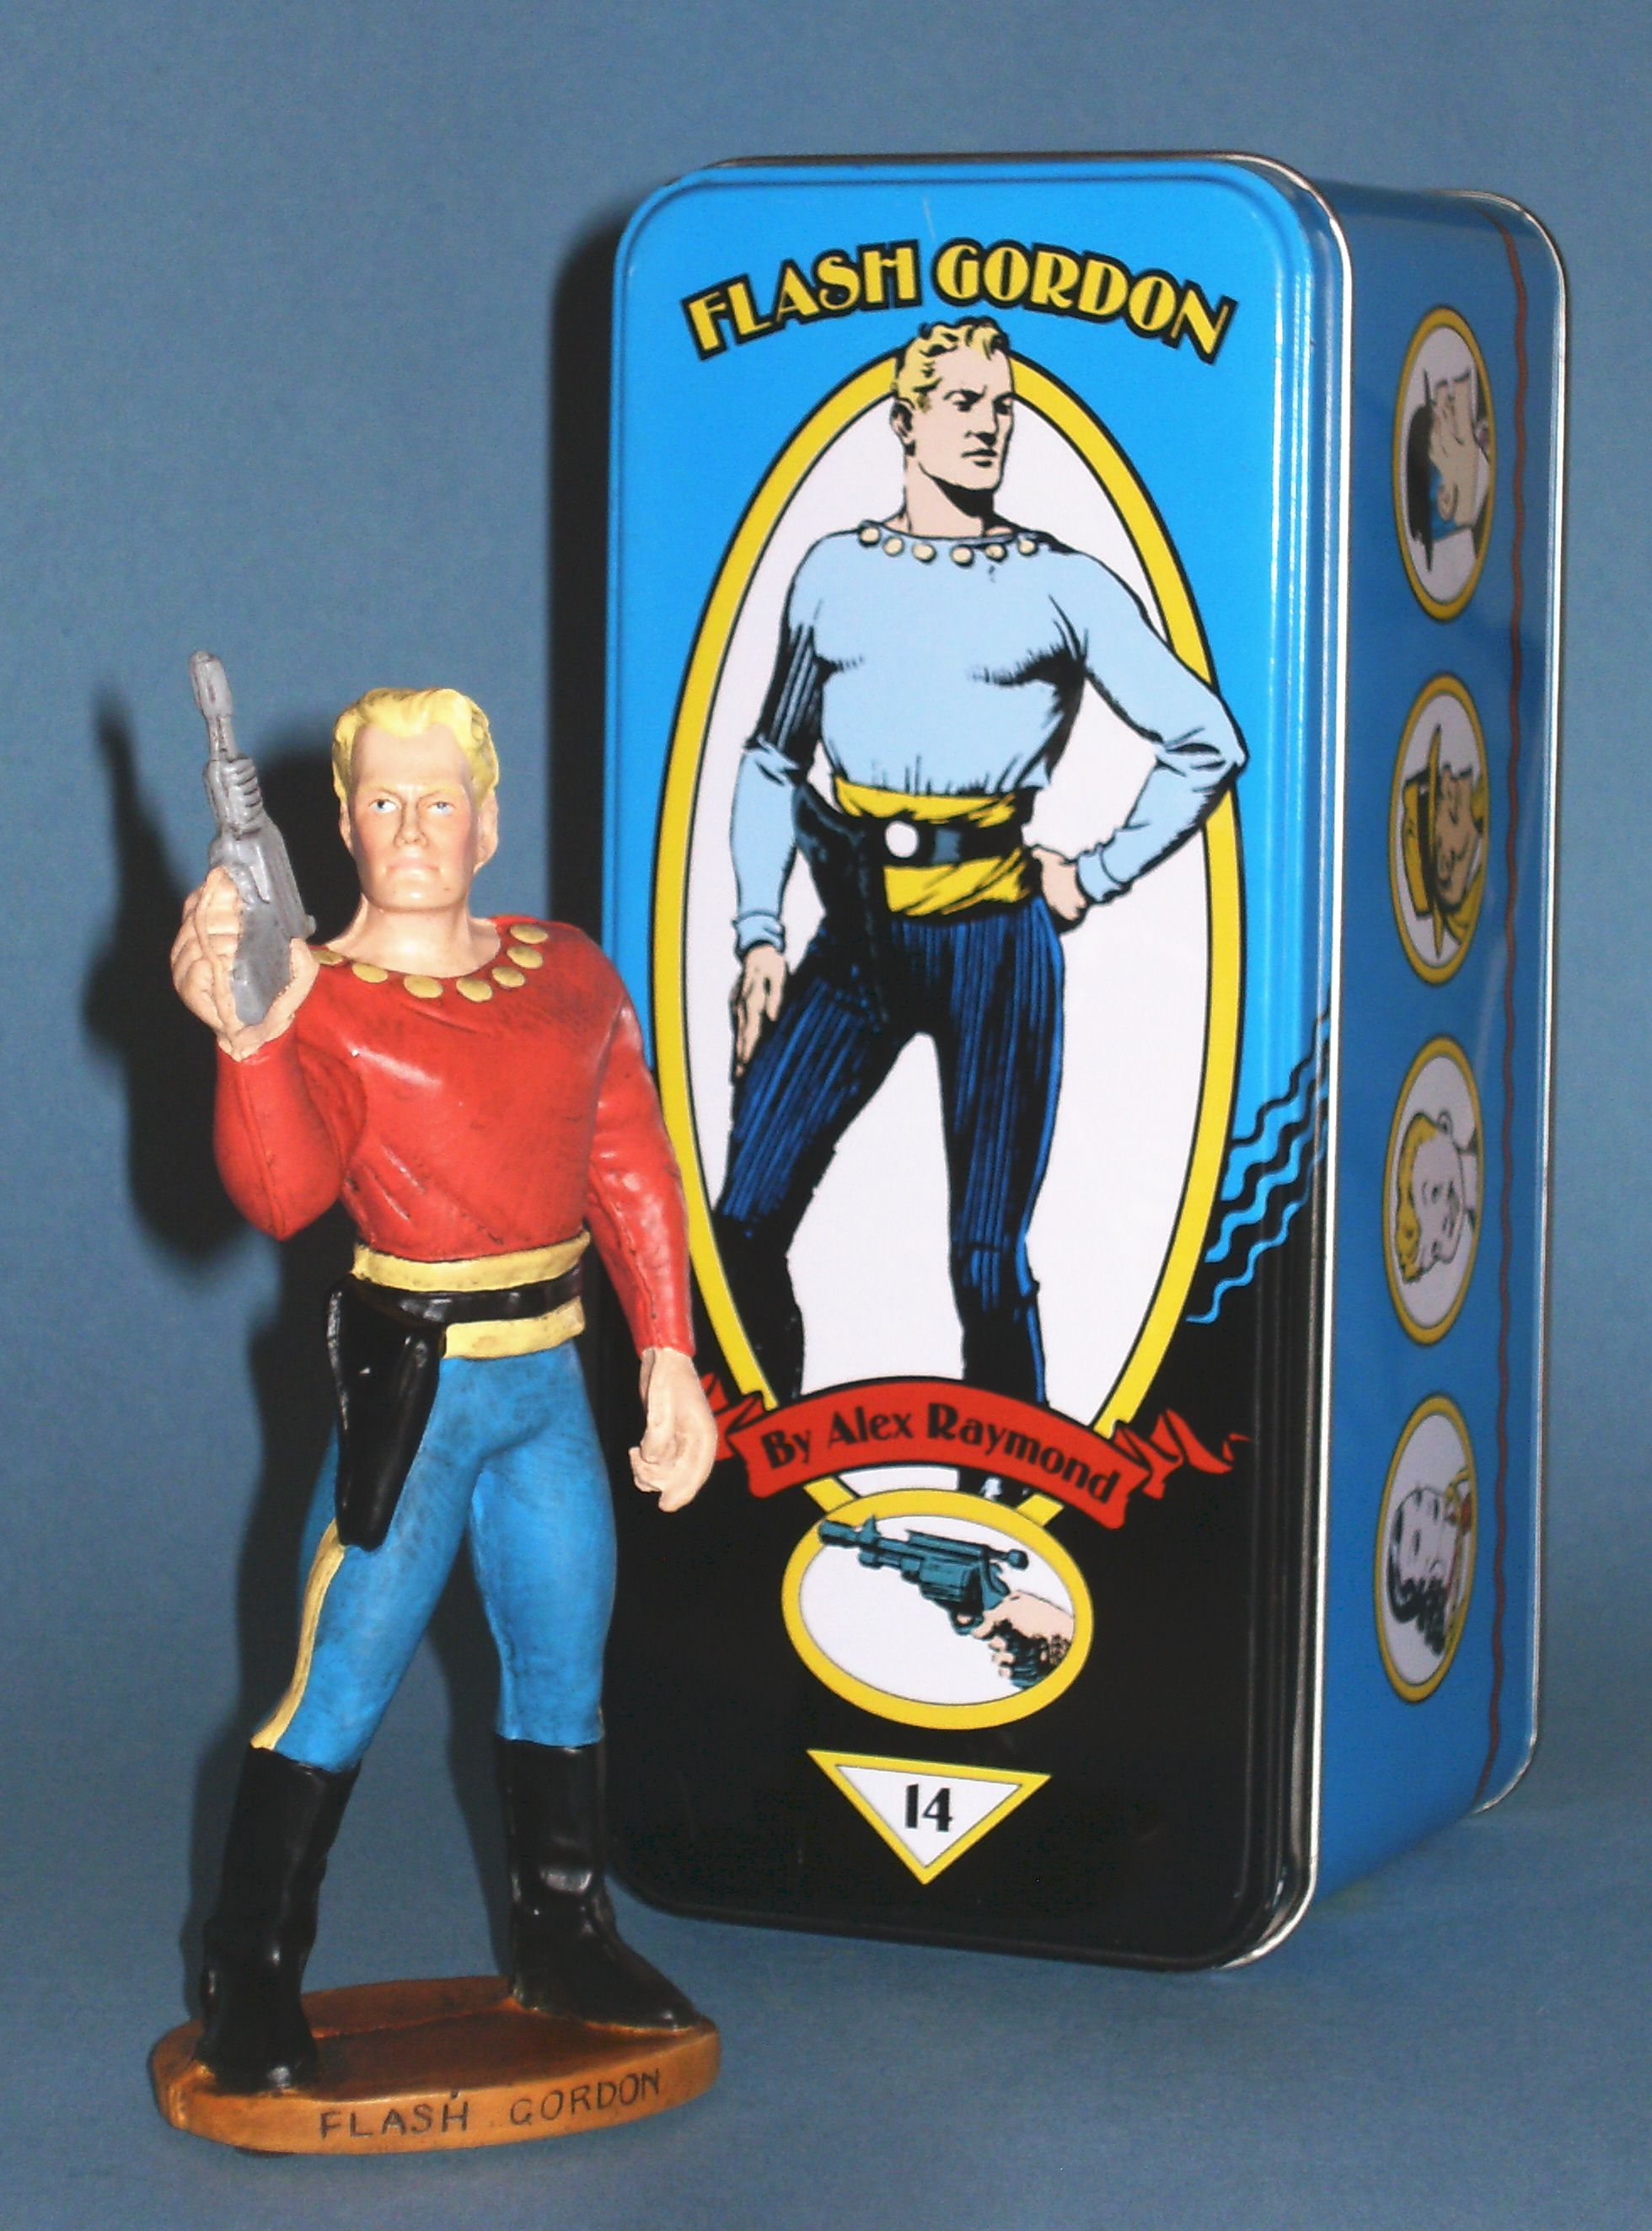 I wish I'd payed more attention to this series of figurines from Dark Horse. Such a fine assortment of comic book characters from various genres, such as Flash Gordon, The Phantom, The Rocketeer, Hellboy, Grendel, Conan and many more. http://beachbumcomics.blogspot.com/